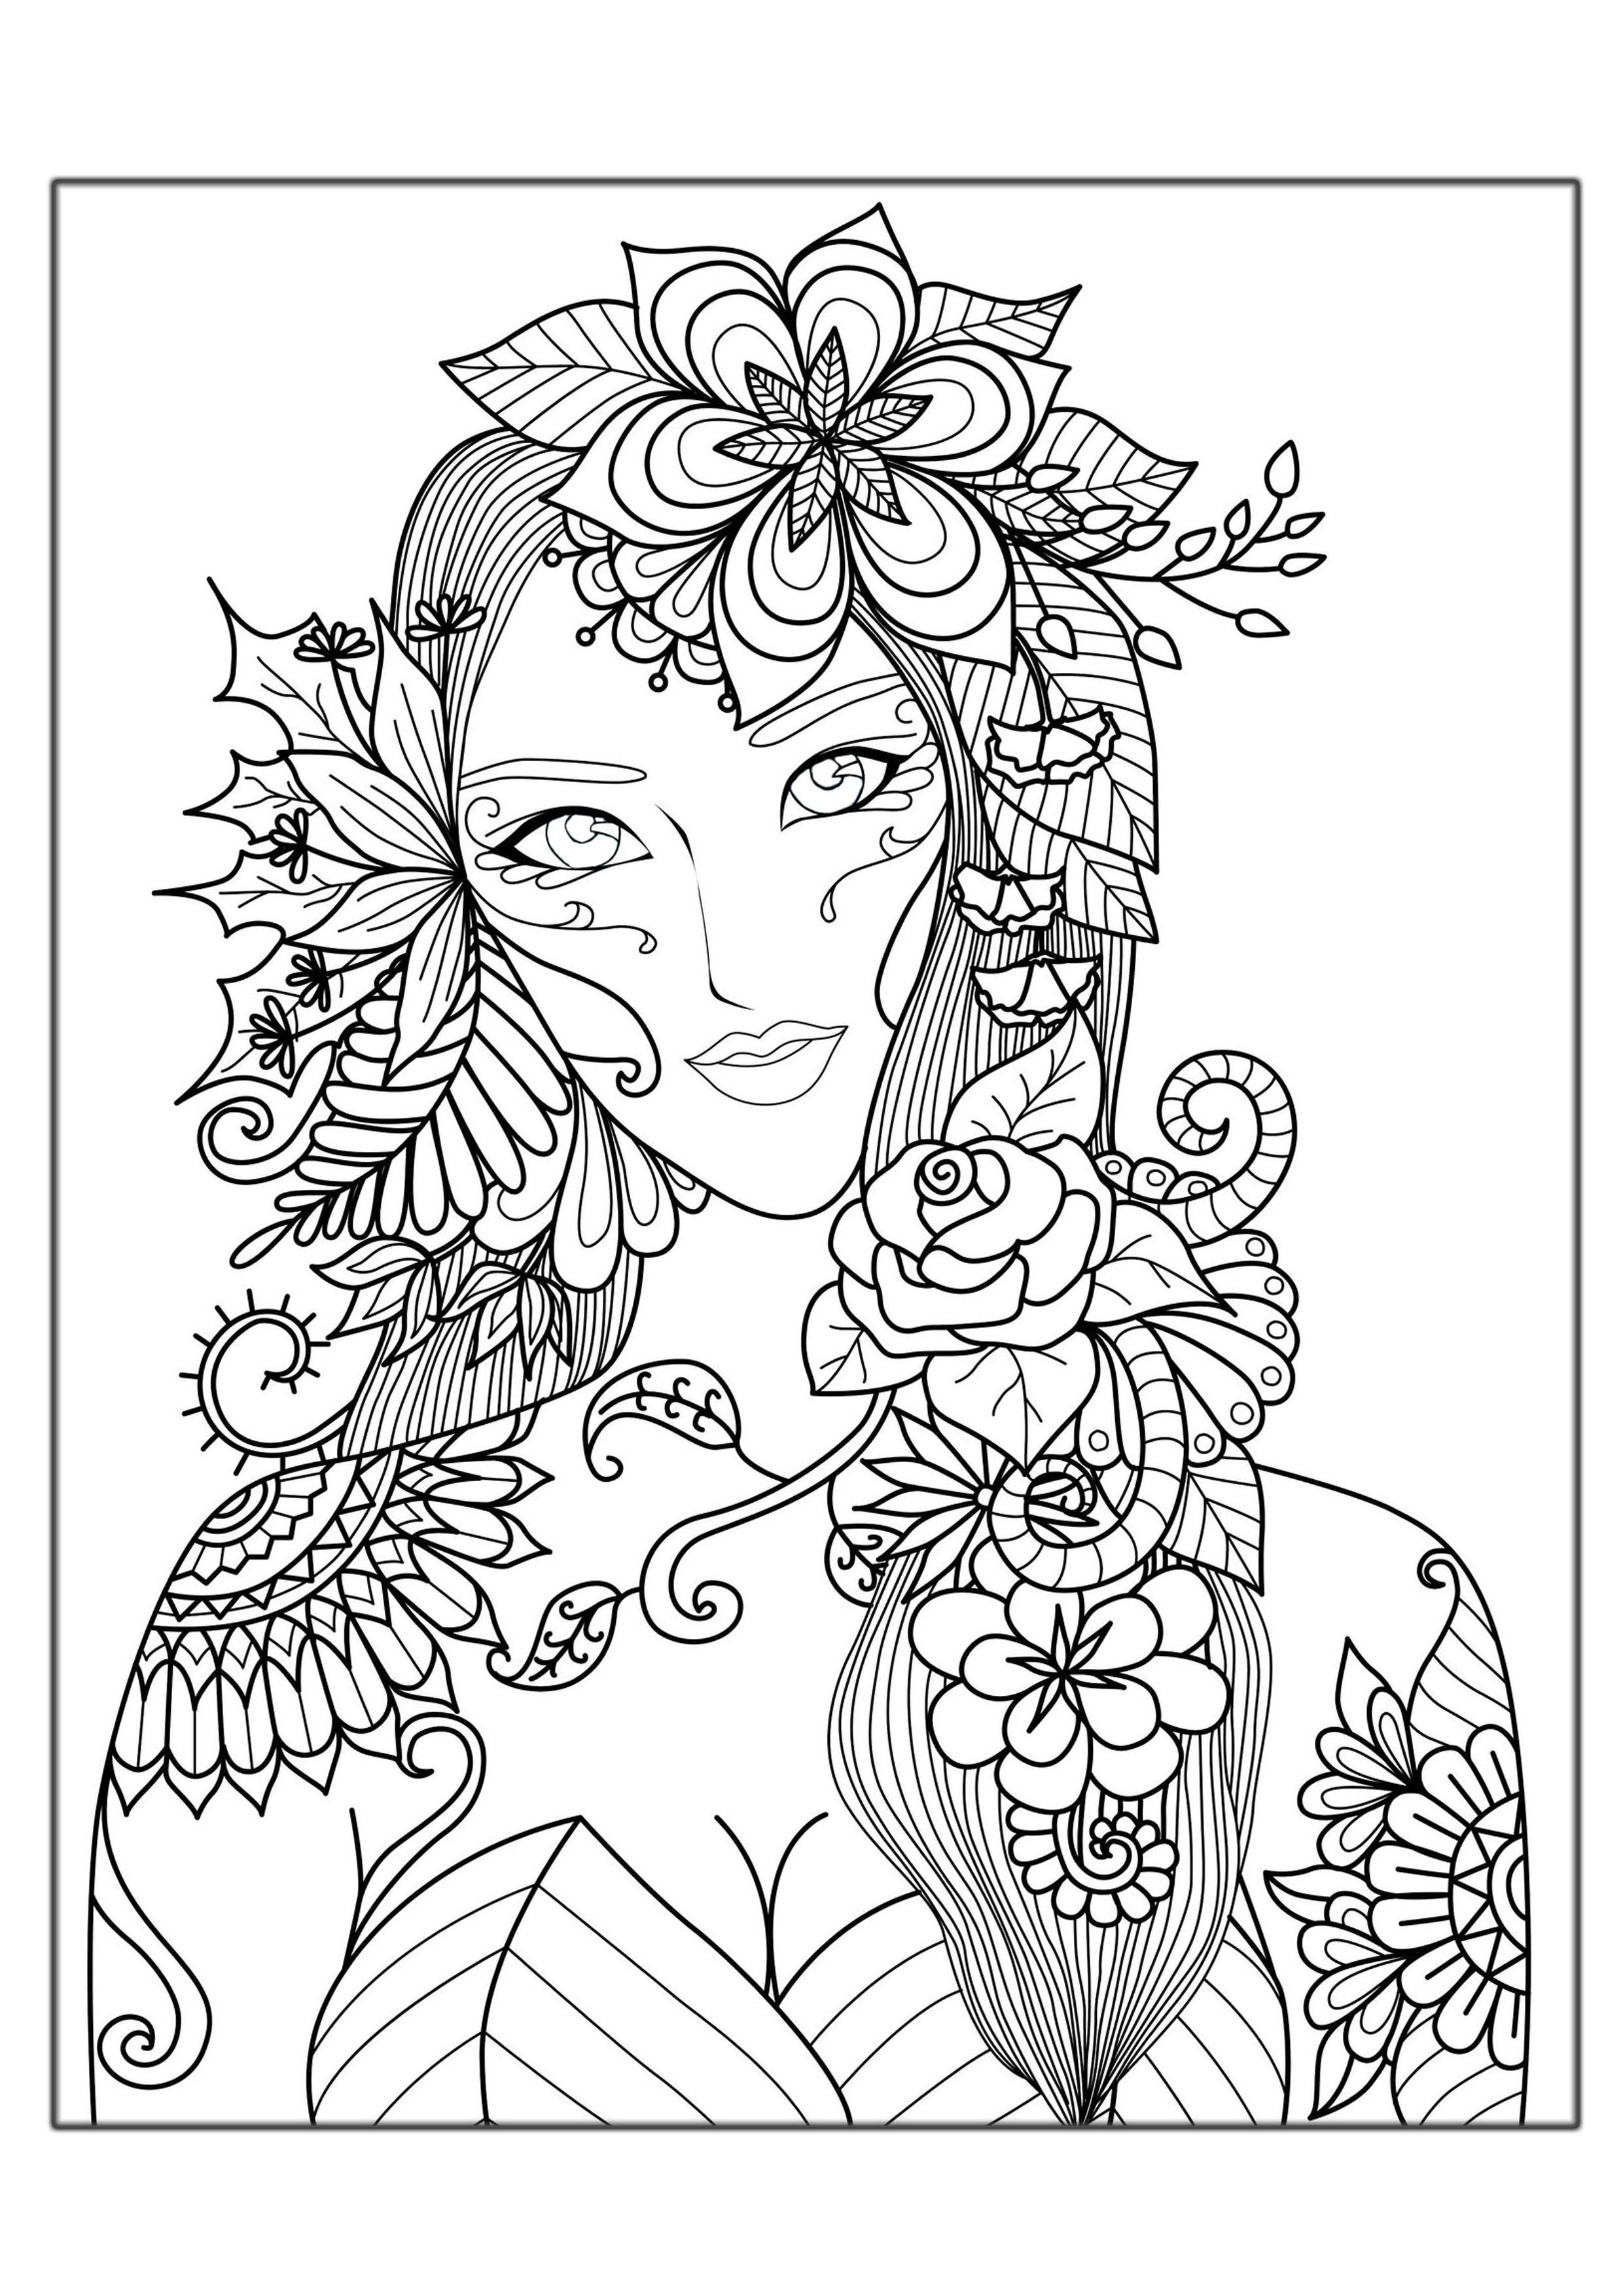 coloring pictures for adults hard coloring pages for adults best coloring pages for kids adults pictures coloring for